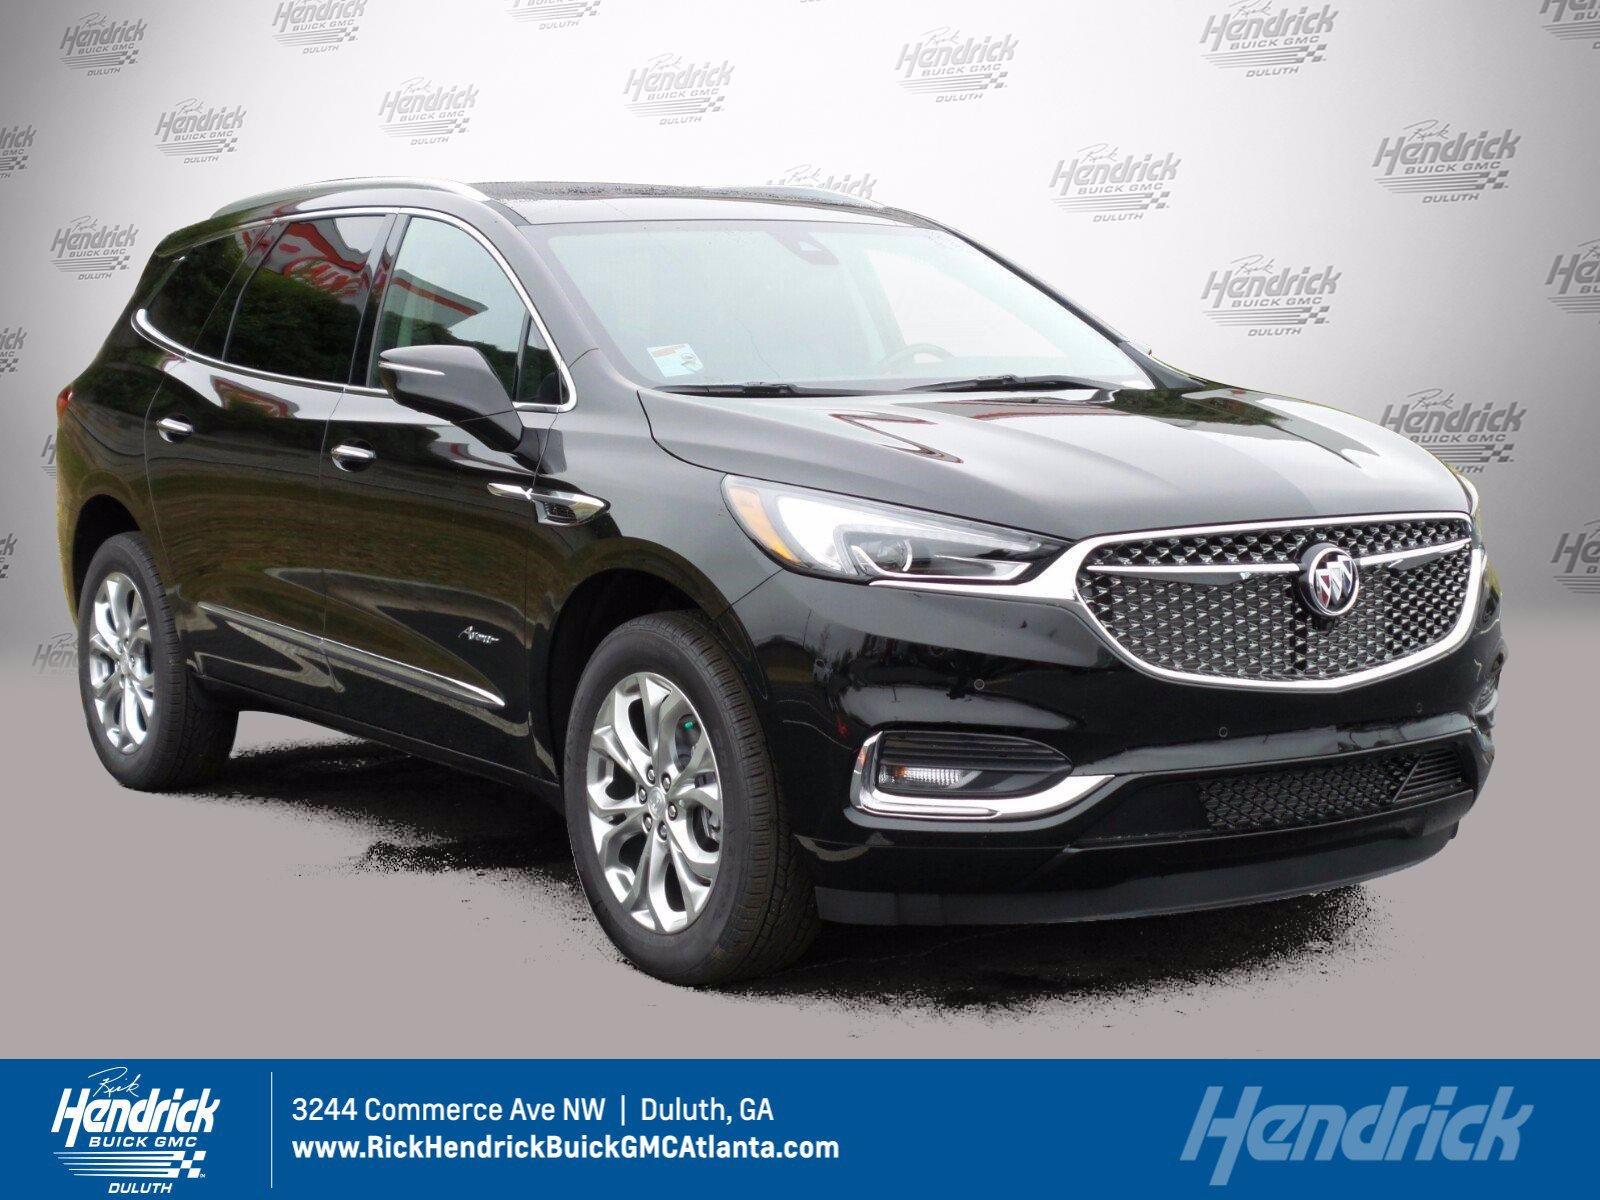 New 2020 Buick Enclave Avenir With Navigation 2021 Buick Enclave Price, Pictures, Brochure